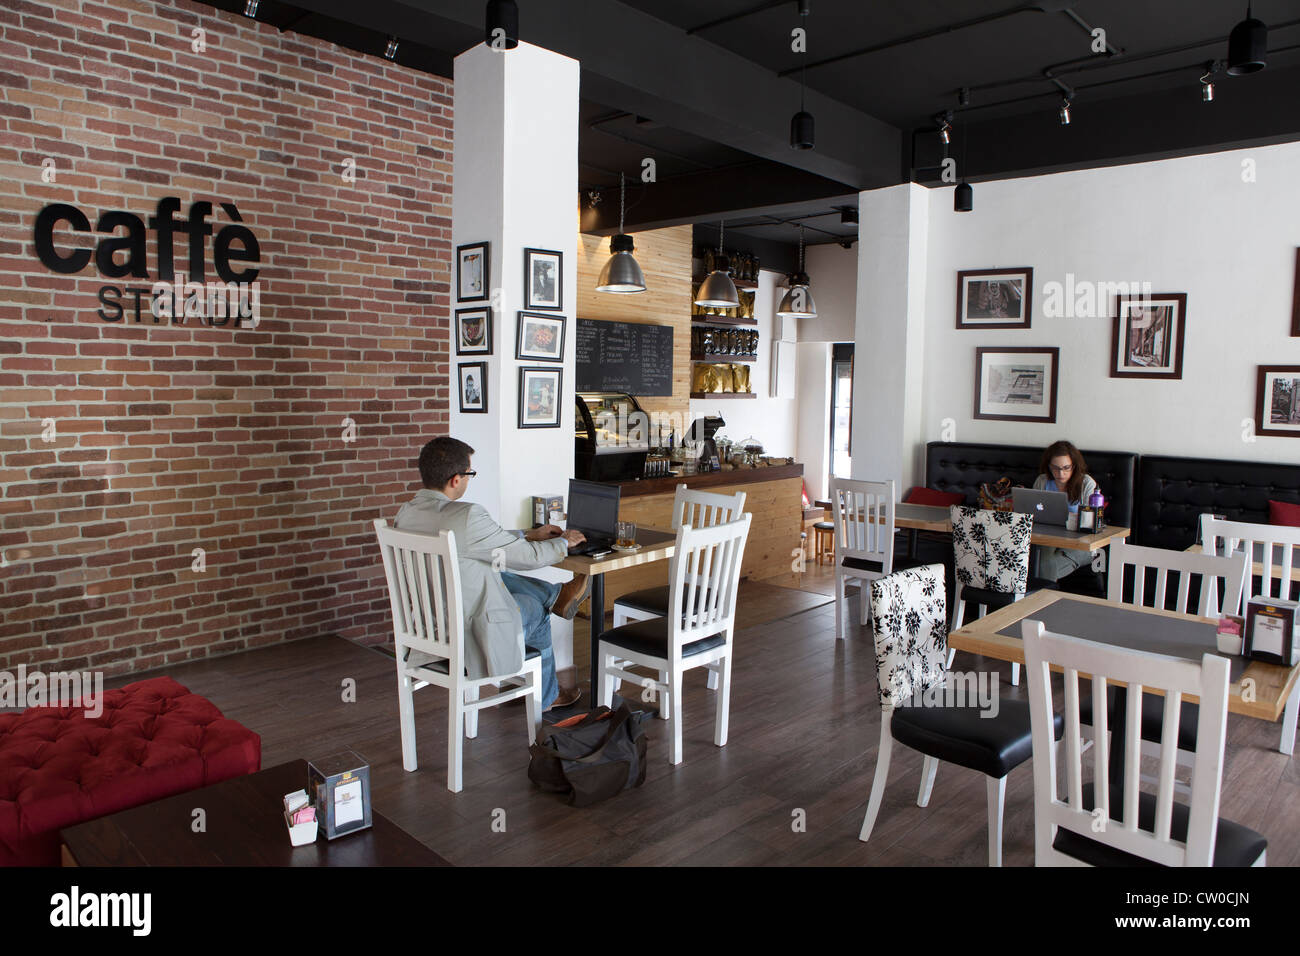 Cafe via la rue Arc-en-ciel Amman Jordanie Photo Stock